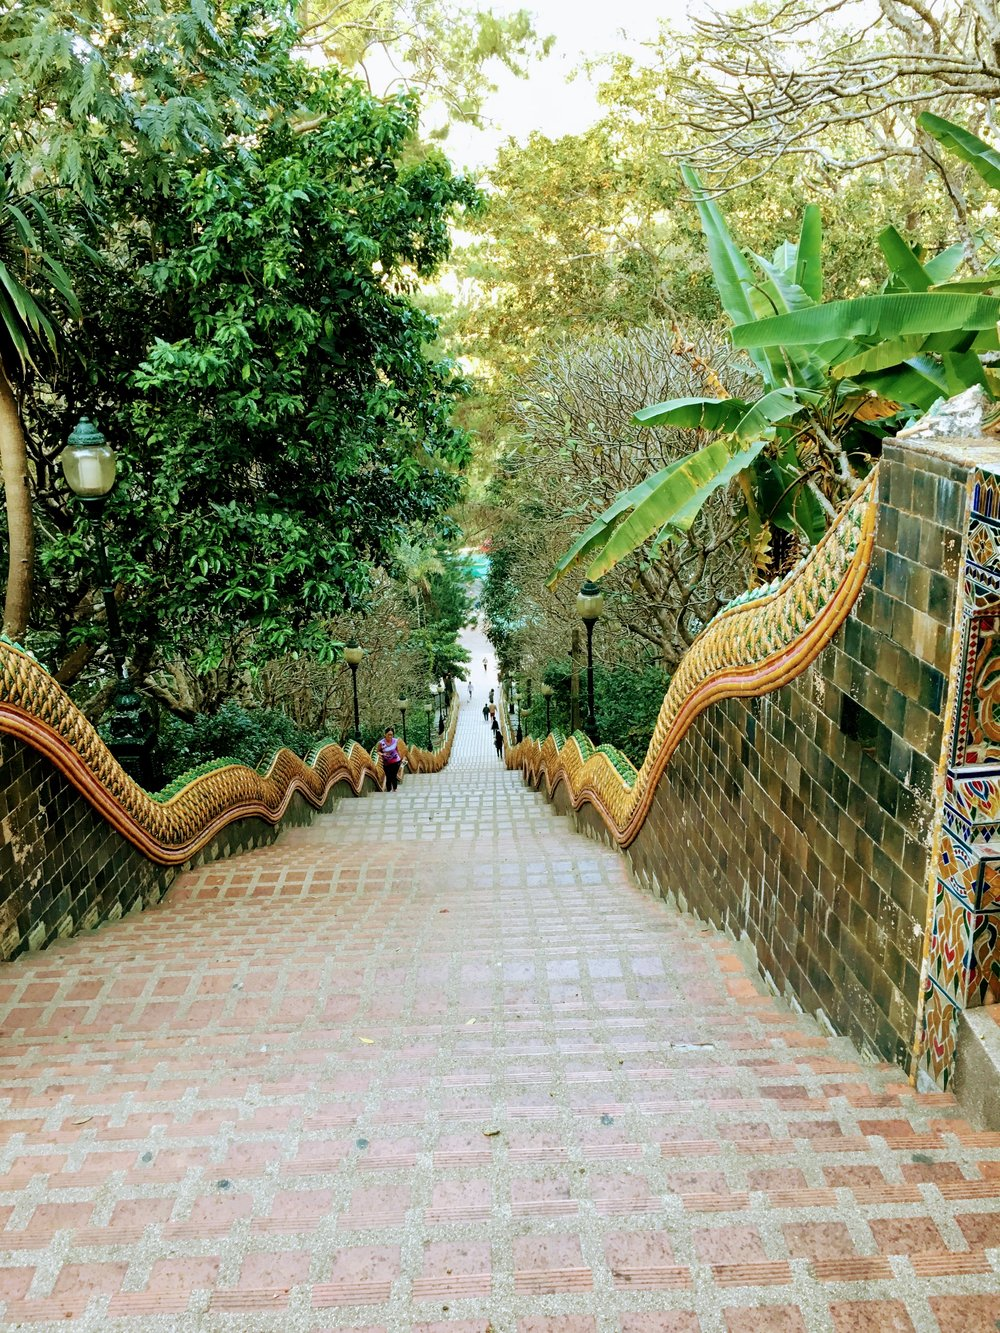 The view looking down the staircase is a beautiful one. The lush greenery that surrounds it looks as though it could overtake the grounds and temple and reminds us that we are in a rain forest after all.